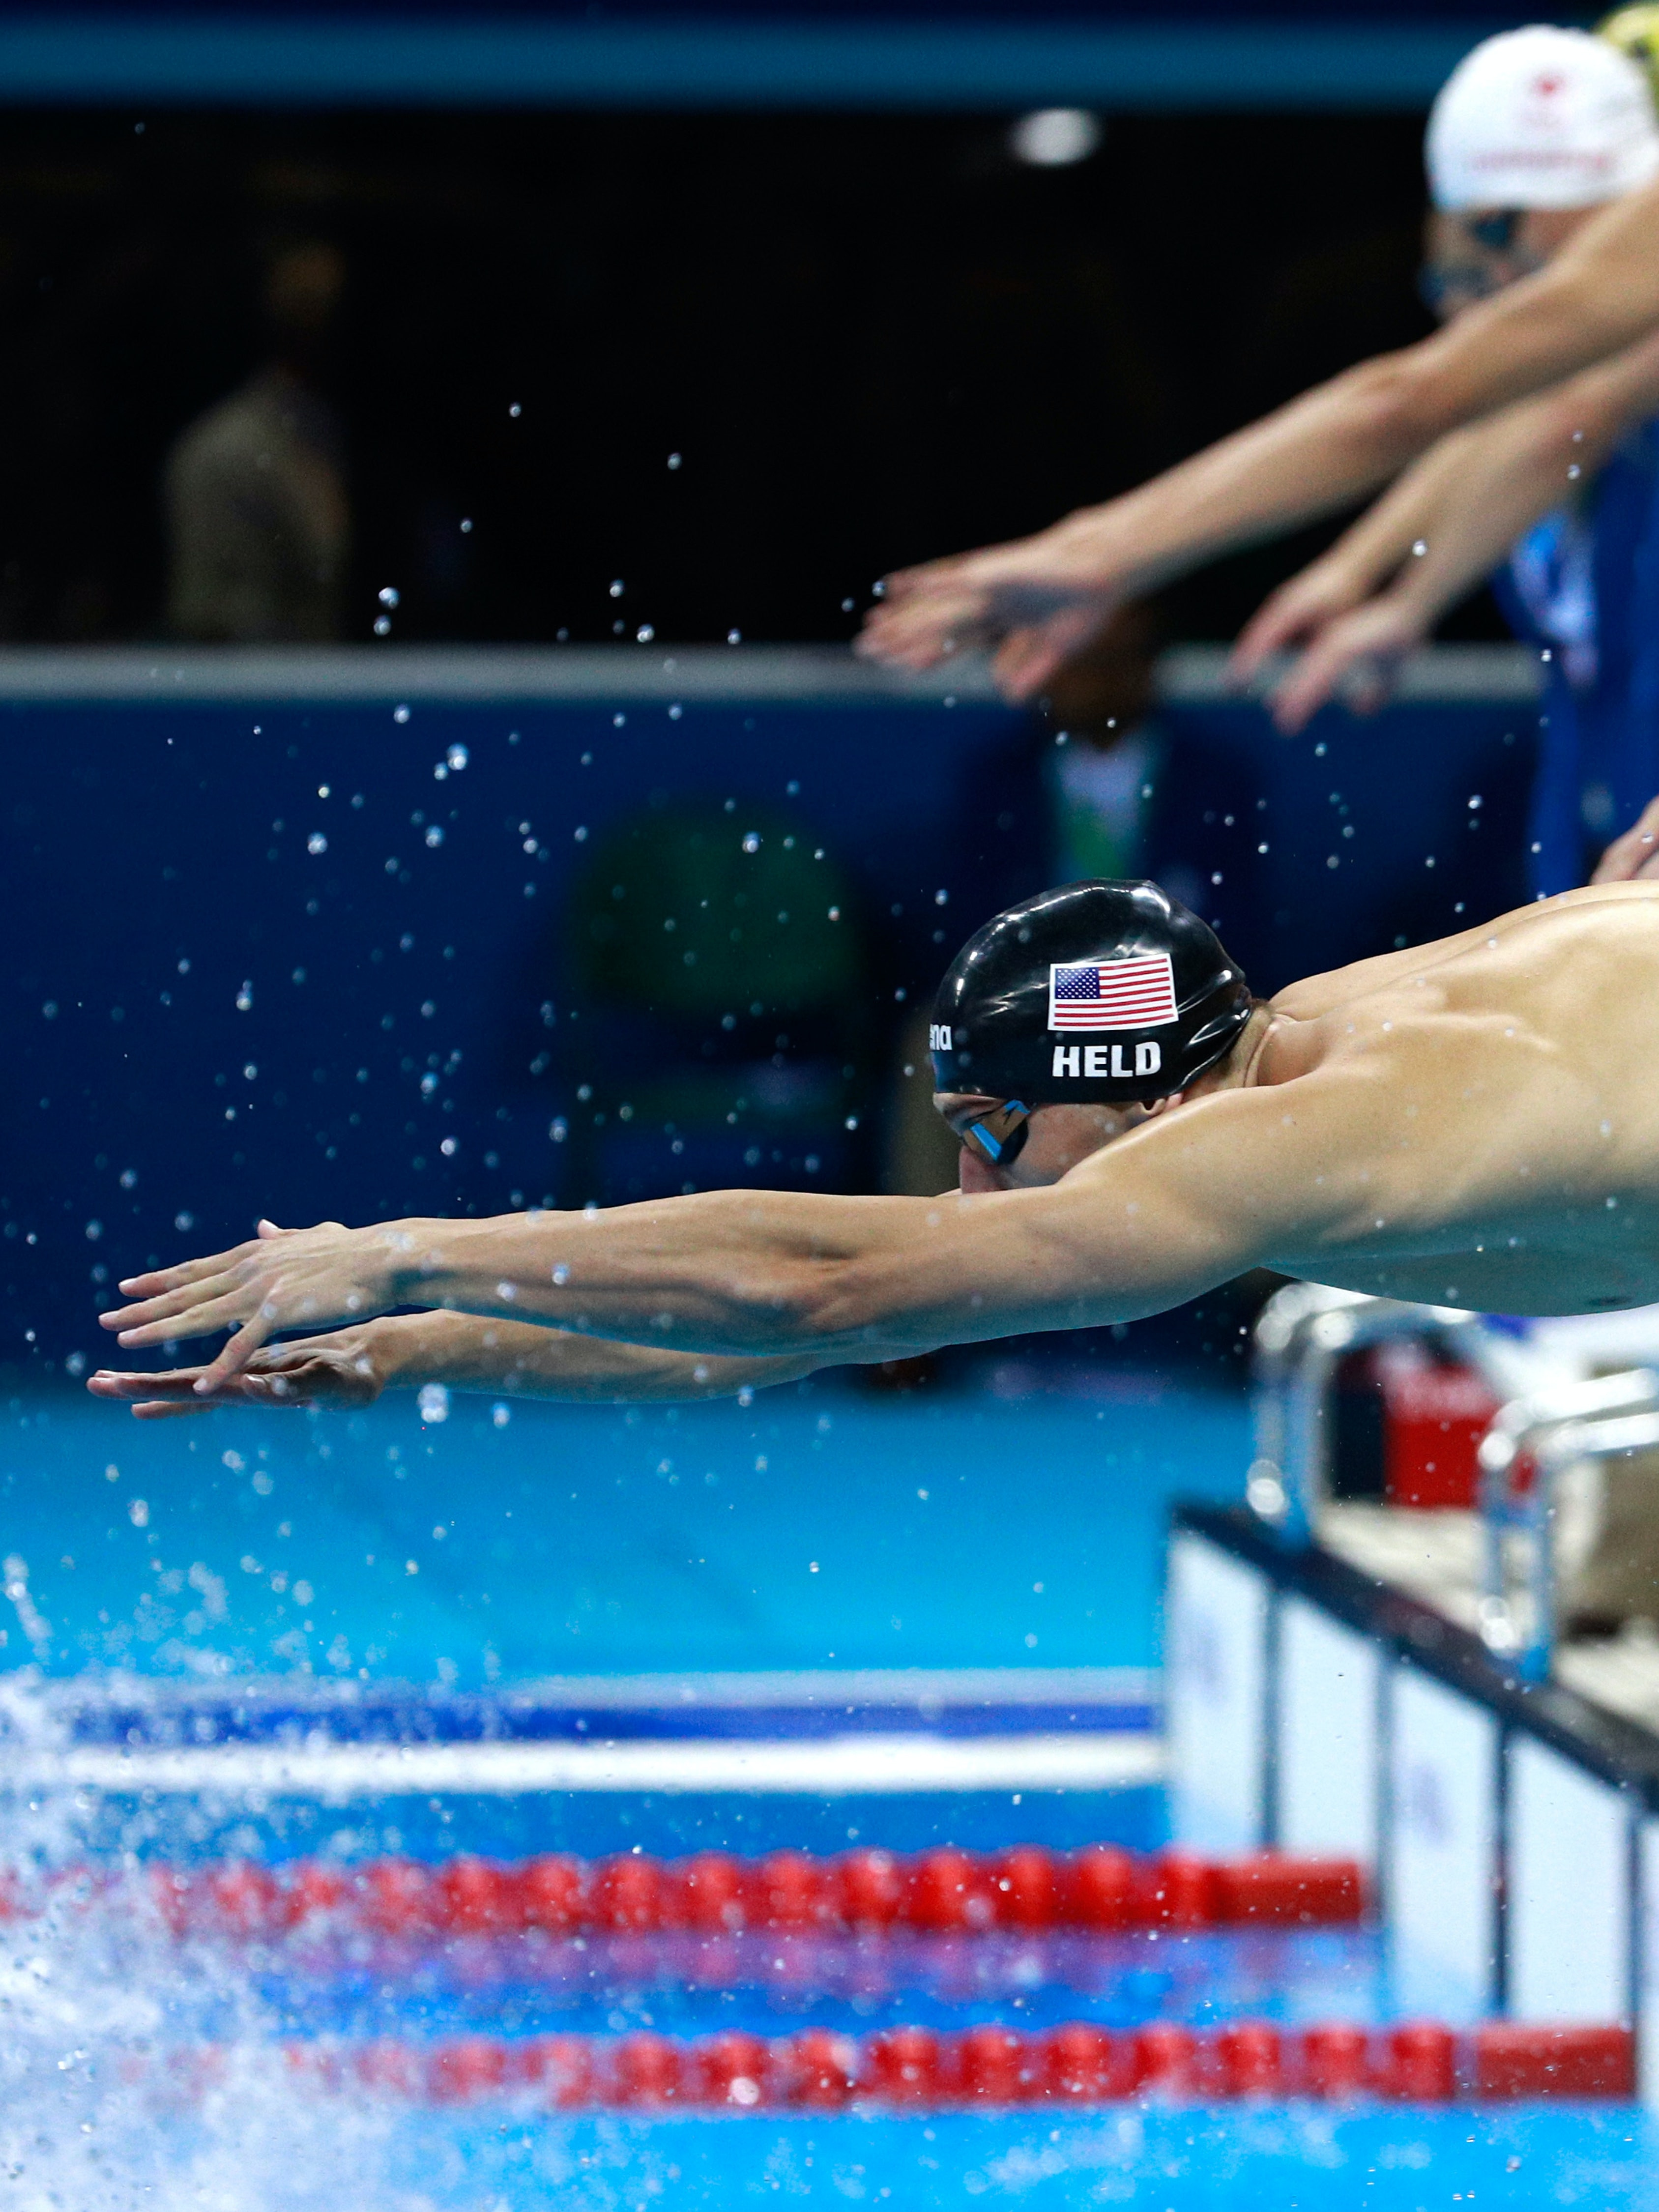 RIO DE JANEIRO, BRAZIL - AUGUST 07:  Ryan Held of the United States competes in the Final of the Men's 4 x 100m Freestyle Relay on Day 2 of the Rio 2016 Olympic Games at the Olympic Aquatics Stadium on August 7, 2016 in Rio de Janeiro, Brazil.  (Photo by Adam Pretty/Getty Images)